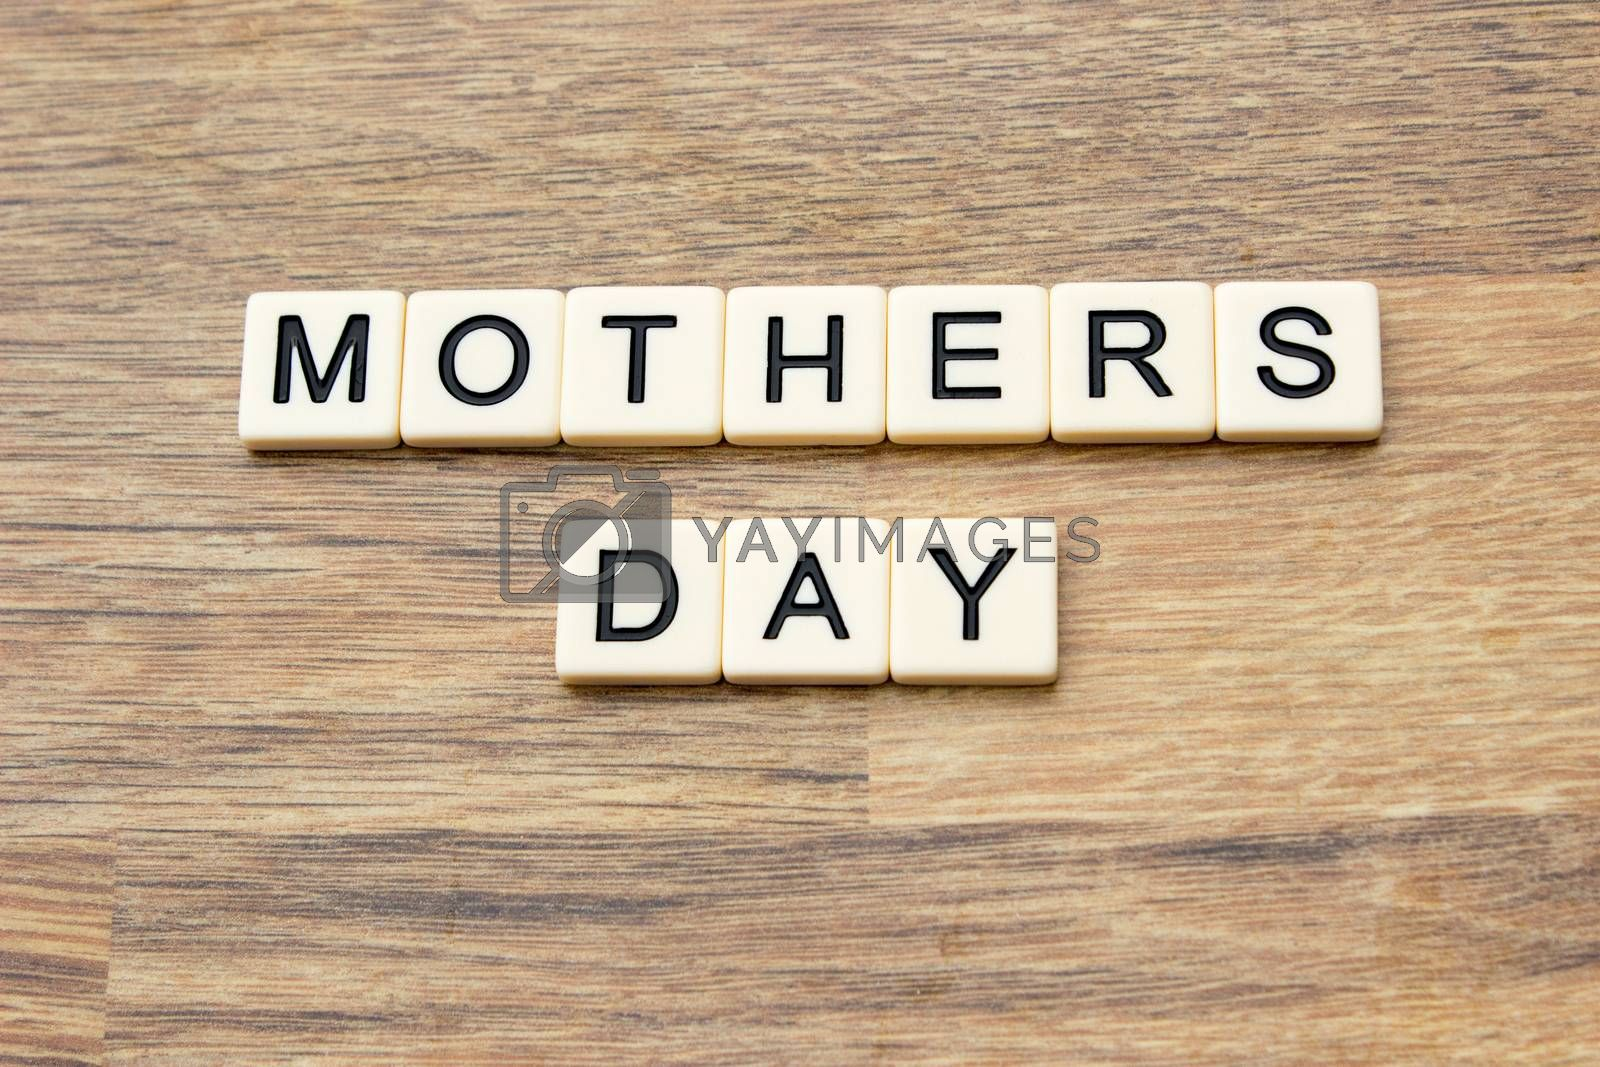 The word mothers day written in tiles on a wooden surface